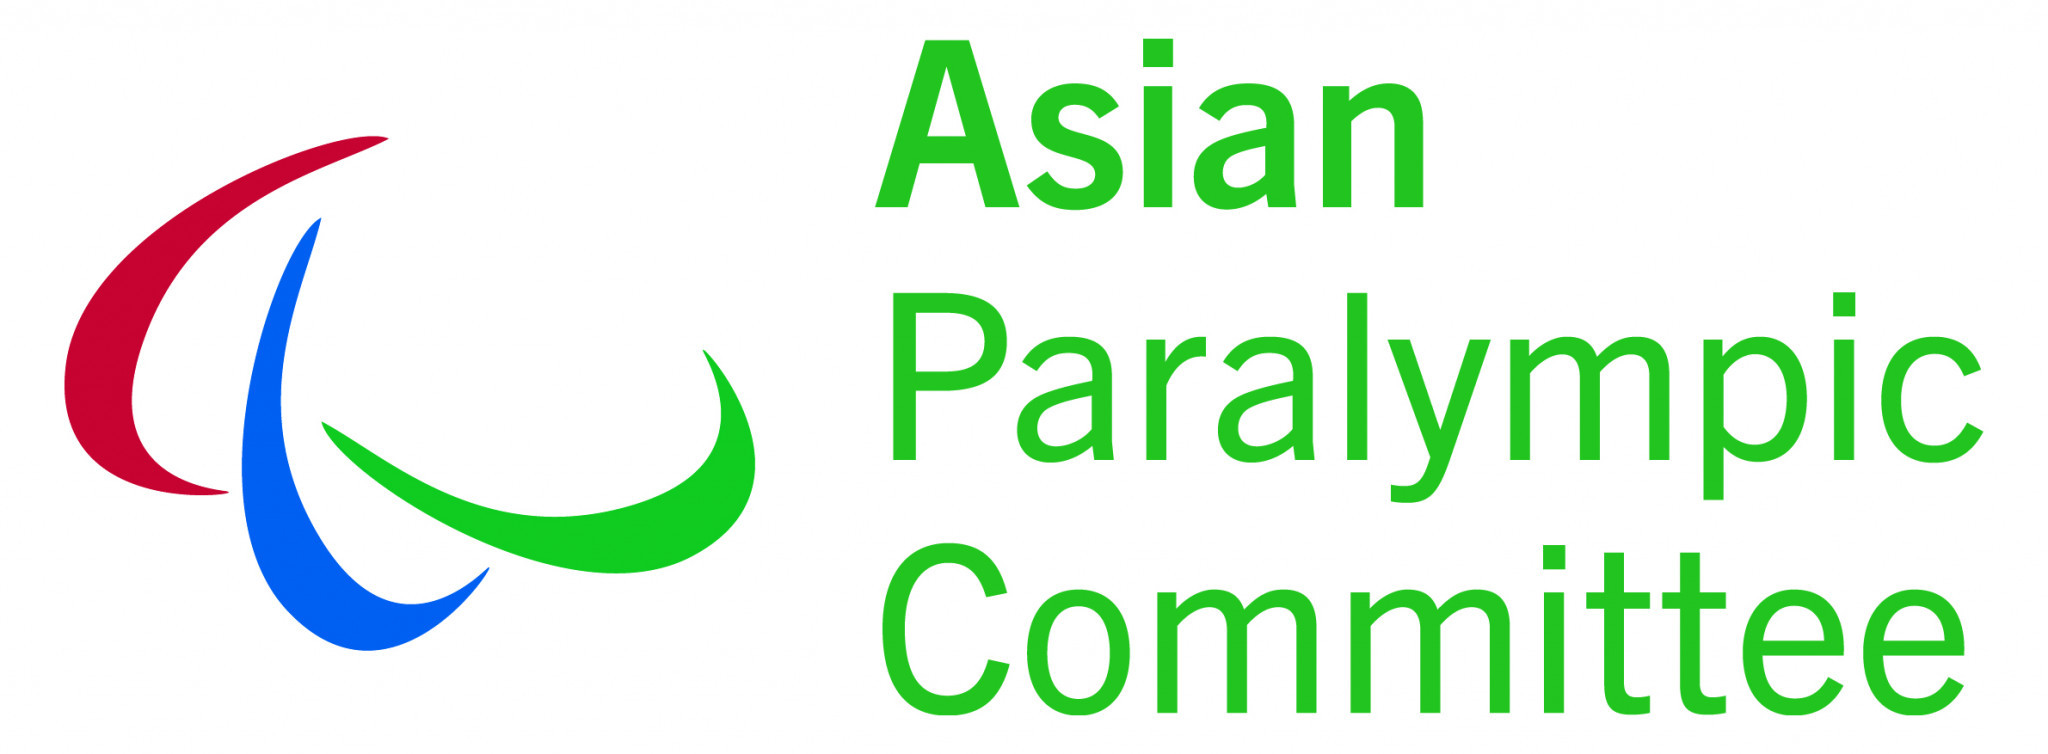 Nominations open for Asian Paralympic Committee standing committee members